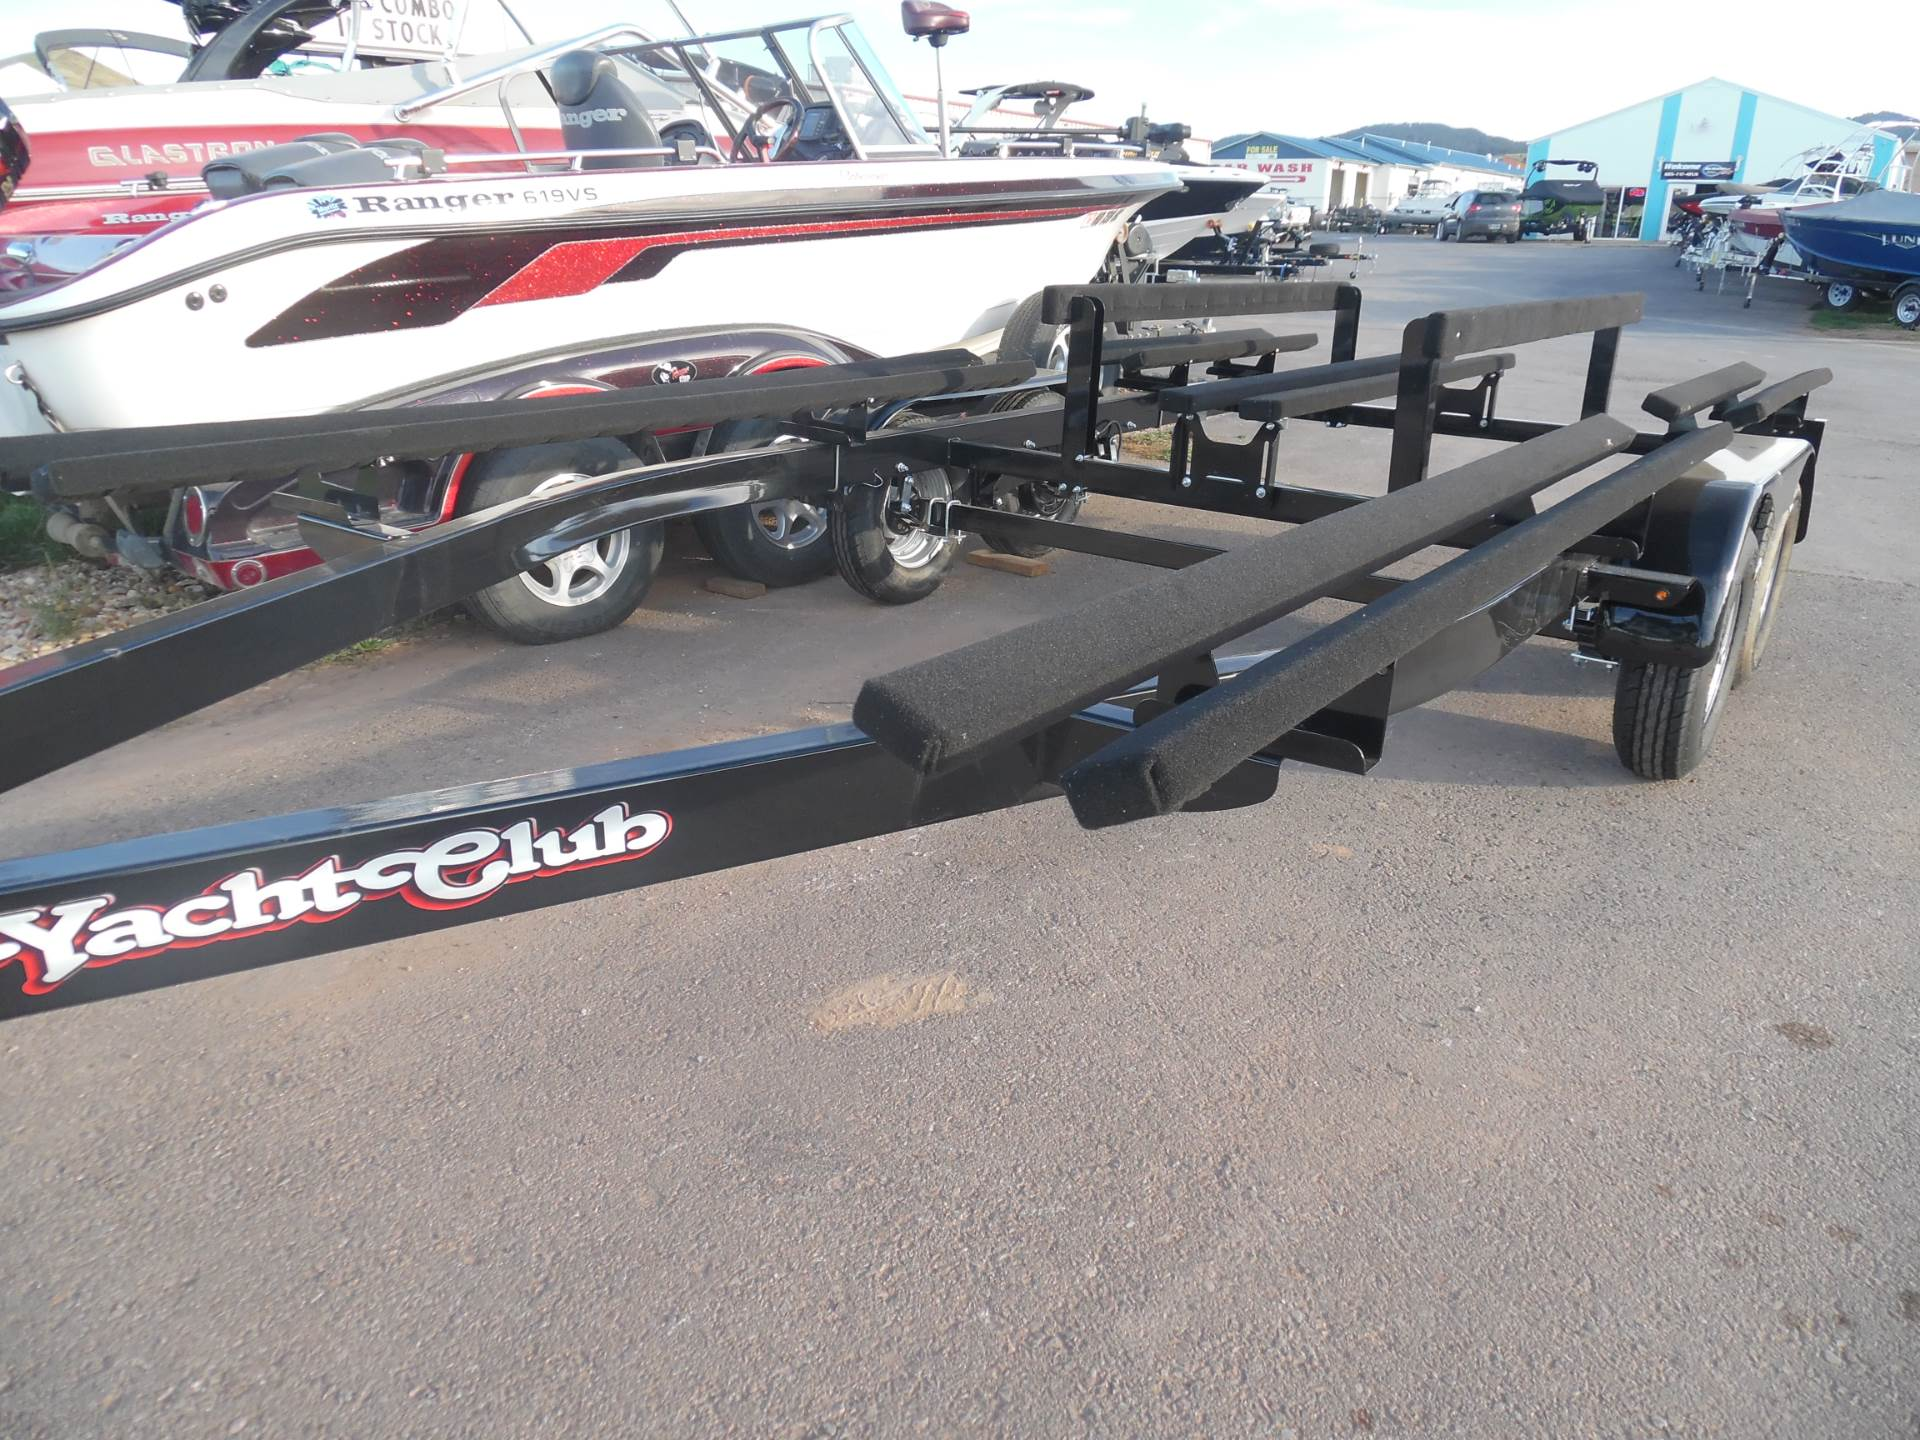 1900 Yacht Club Tandem Axle Pontoon Trailers for 18'-28' pontoons and tri-toons- in stock! in Spearfish, South Dakota - Photo 2